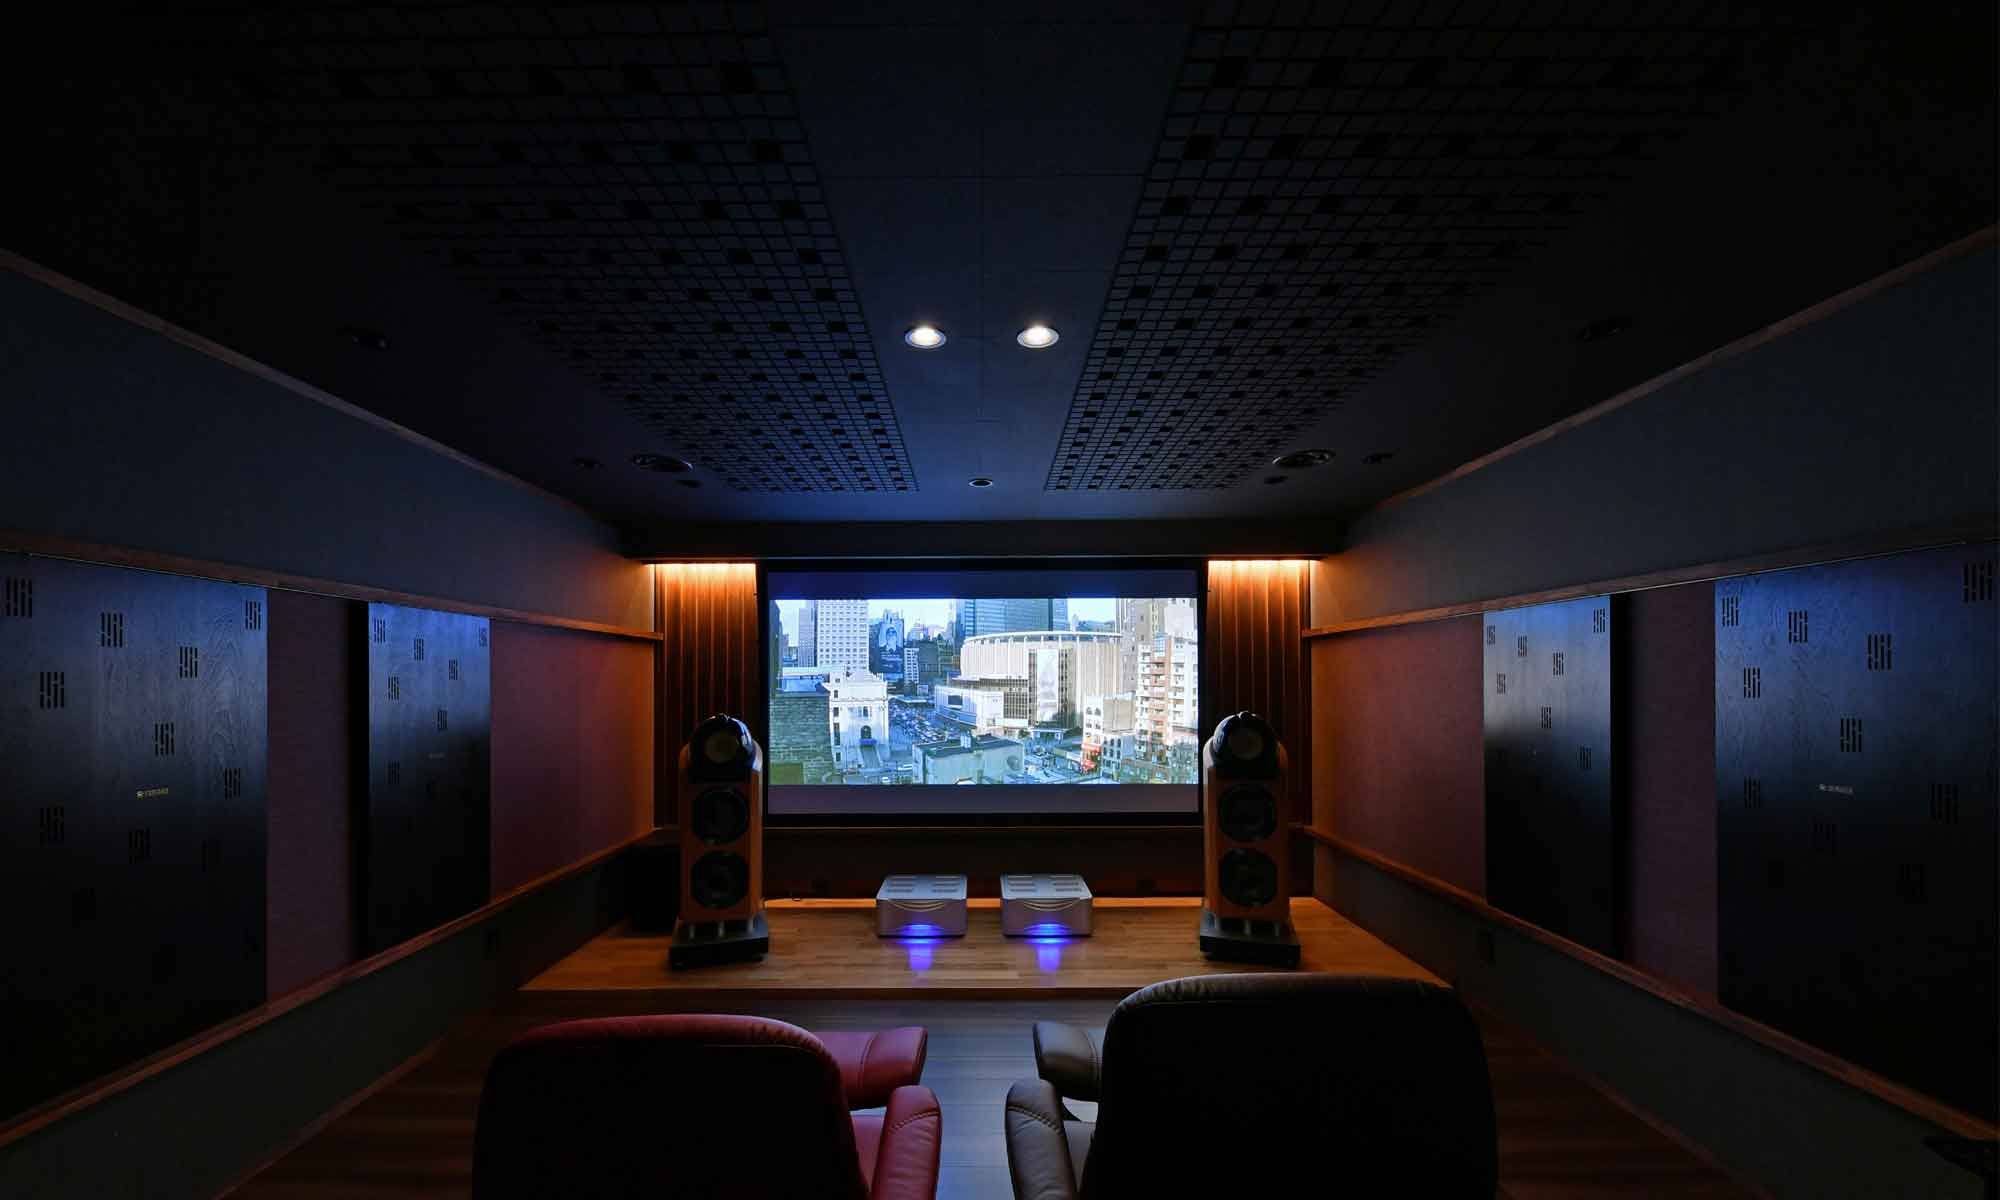 Listening room at Yokkaichi musen